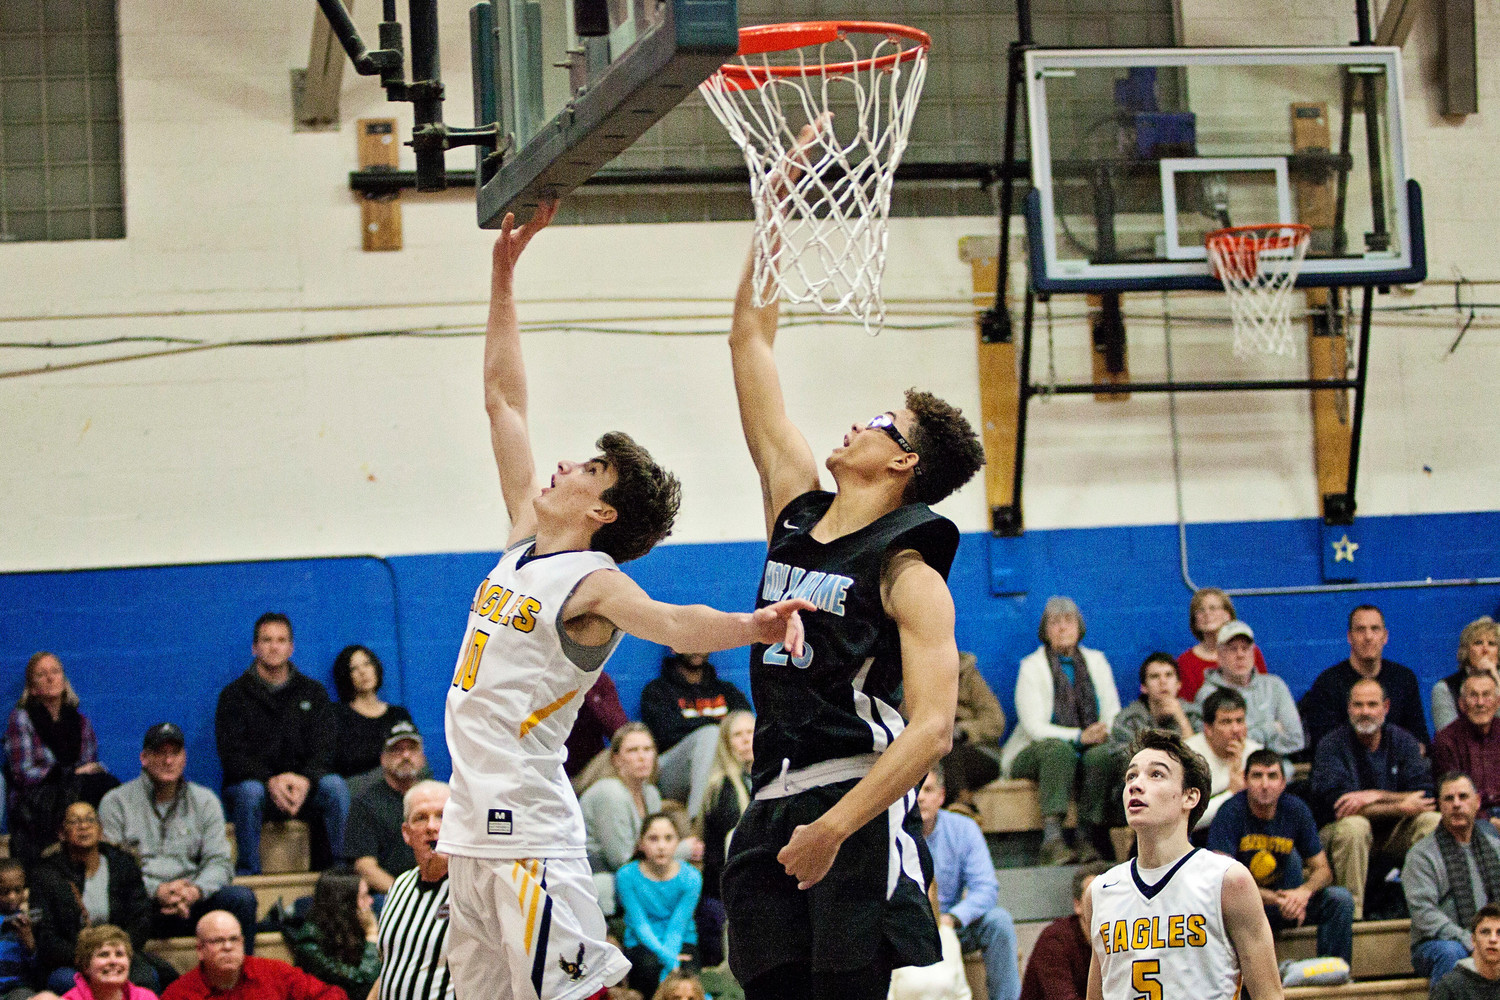 Ryan Bonneau lays the ball up while a Holy Name player tries to block the shot.